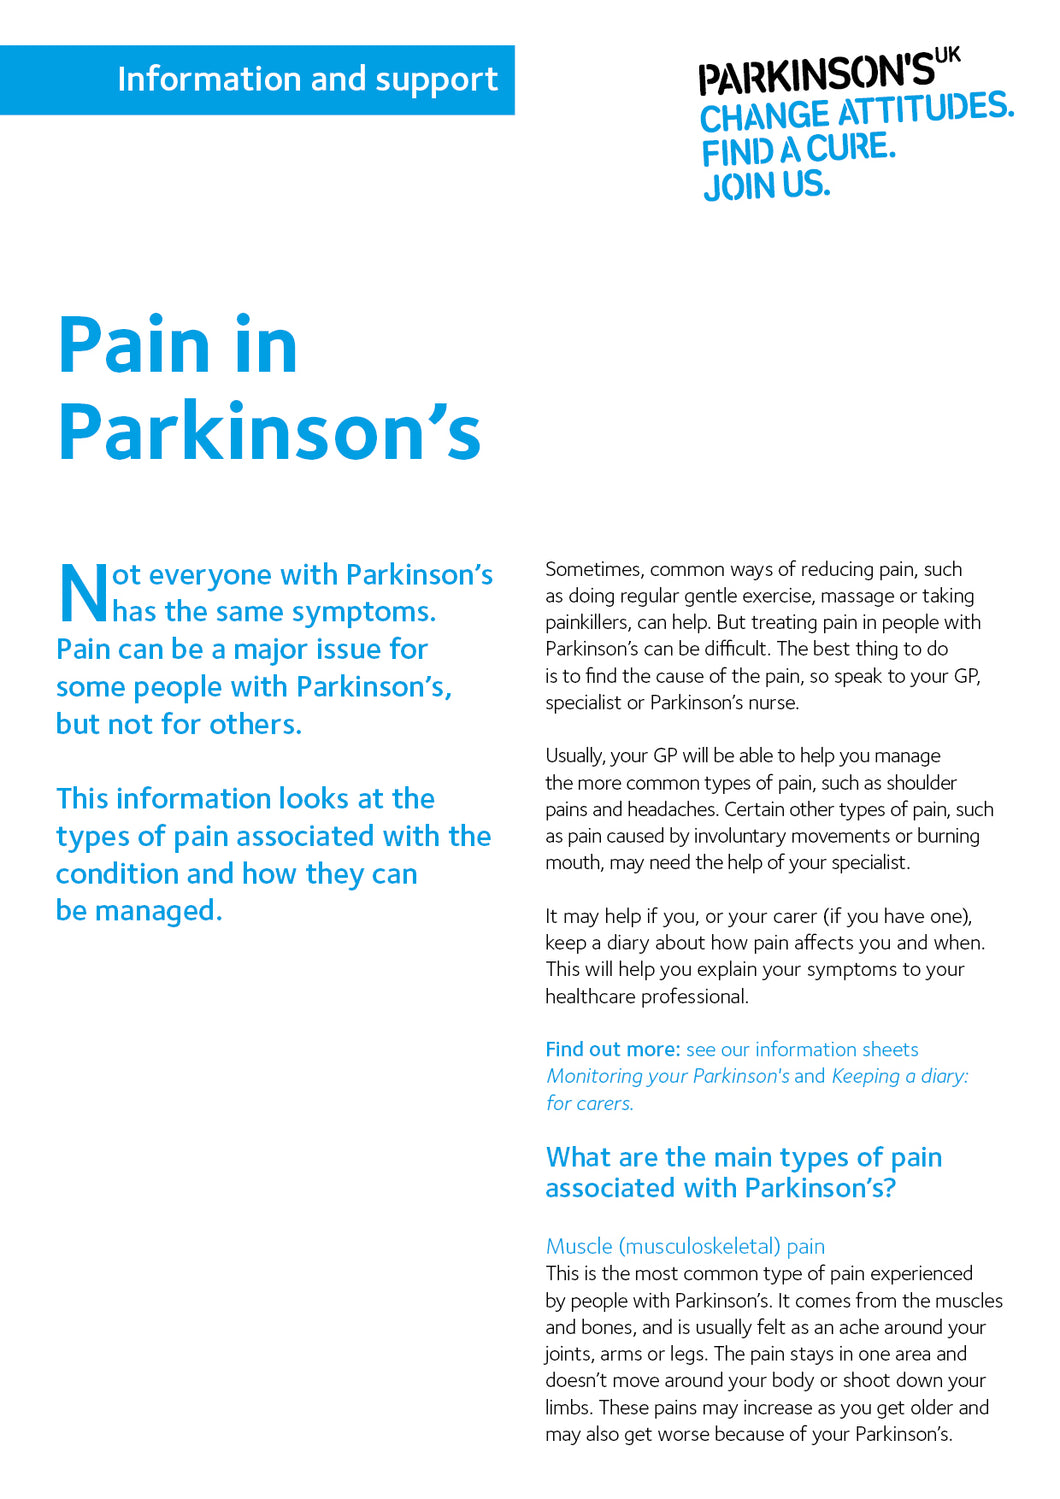 Pain in Parkinson's - Parkinson's shop